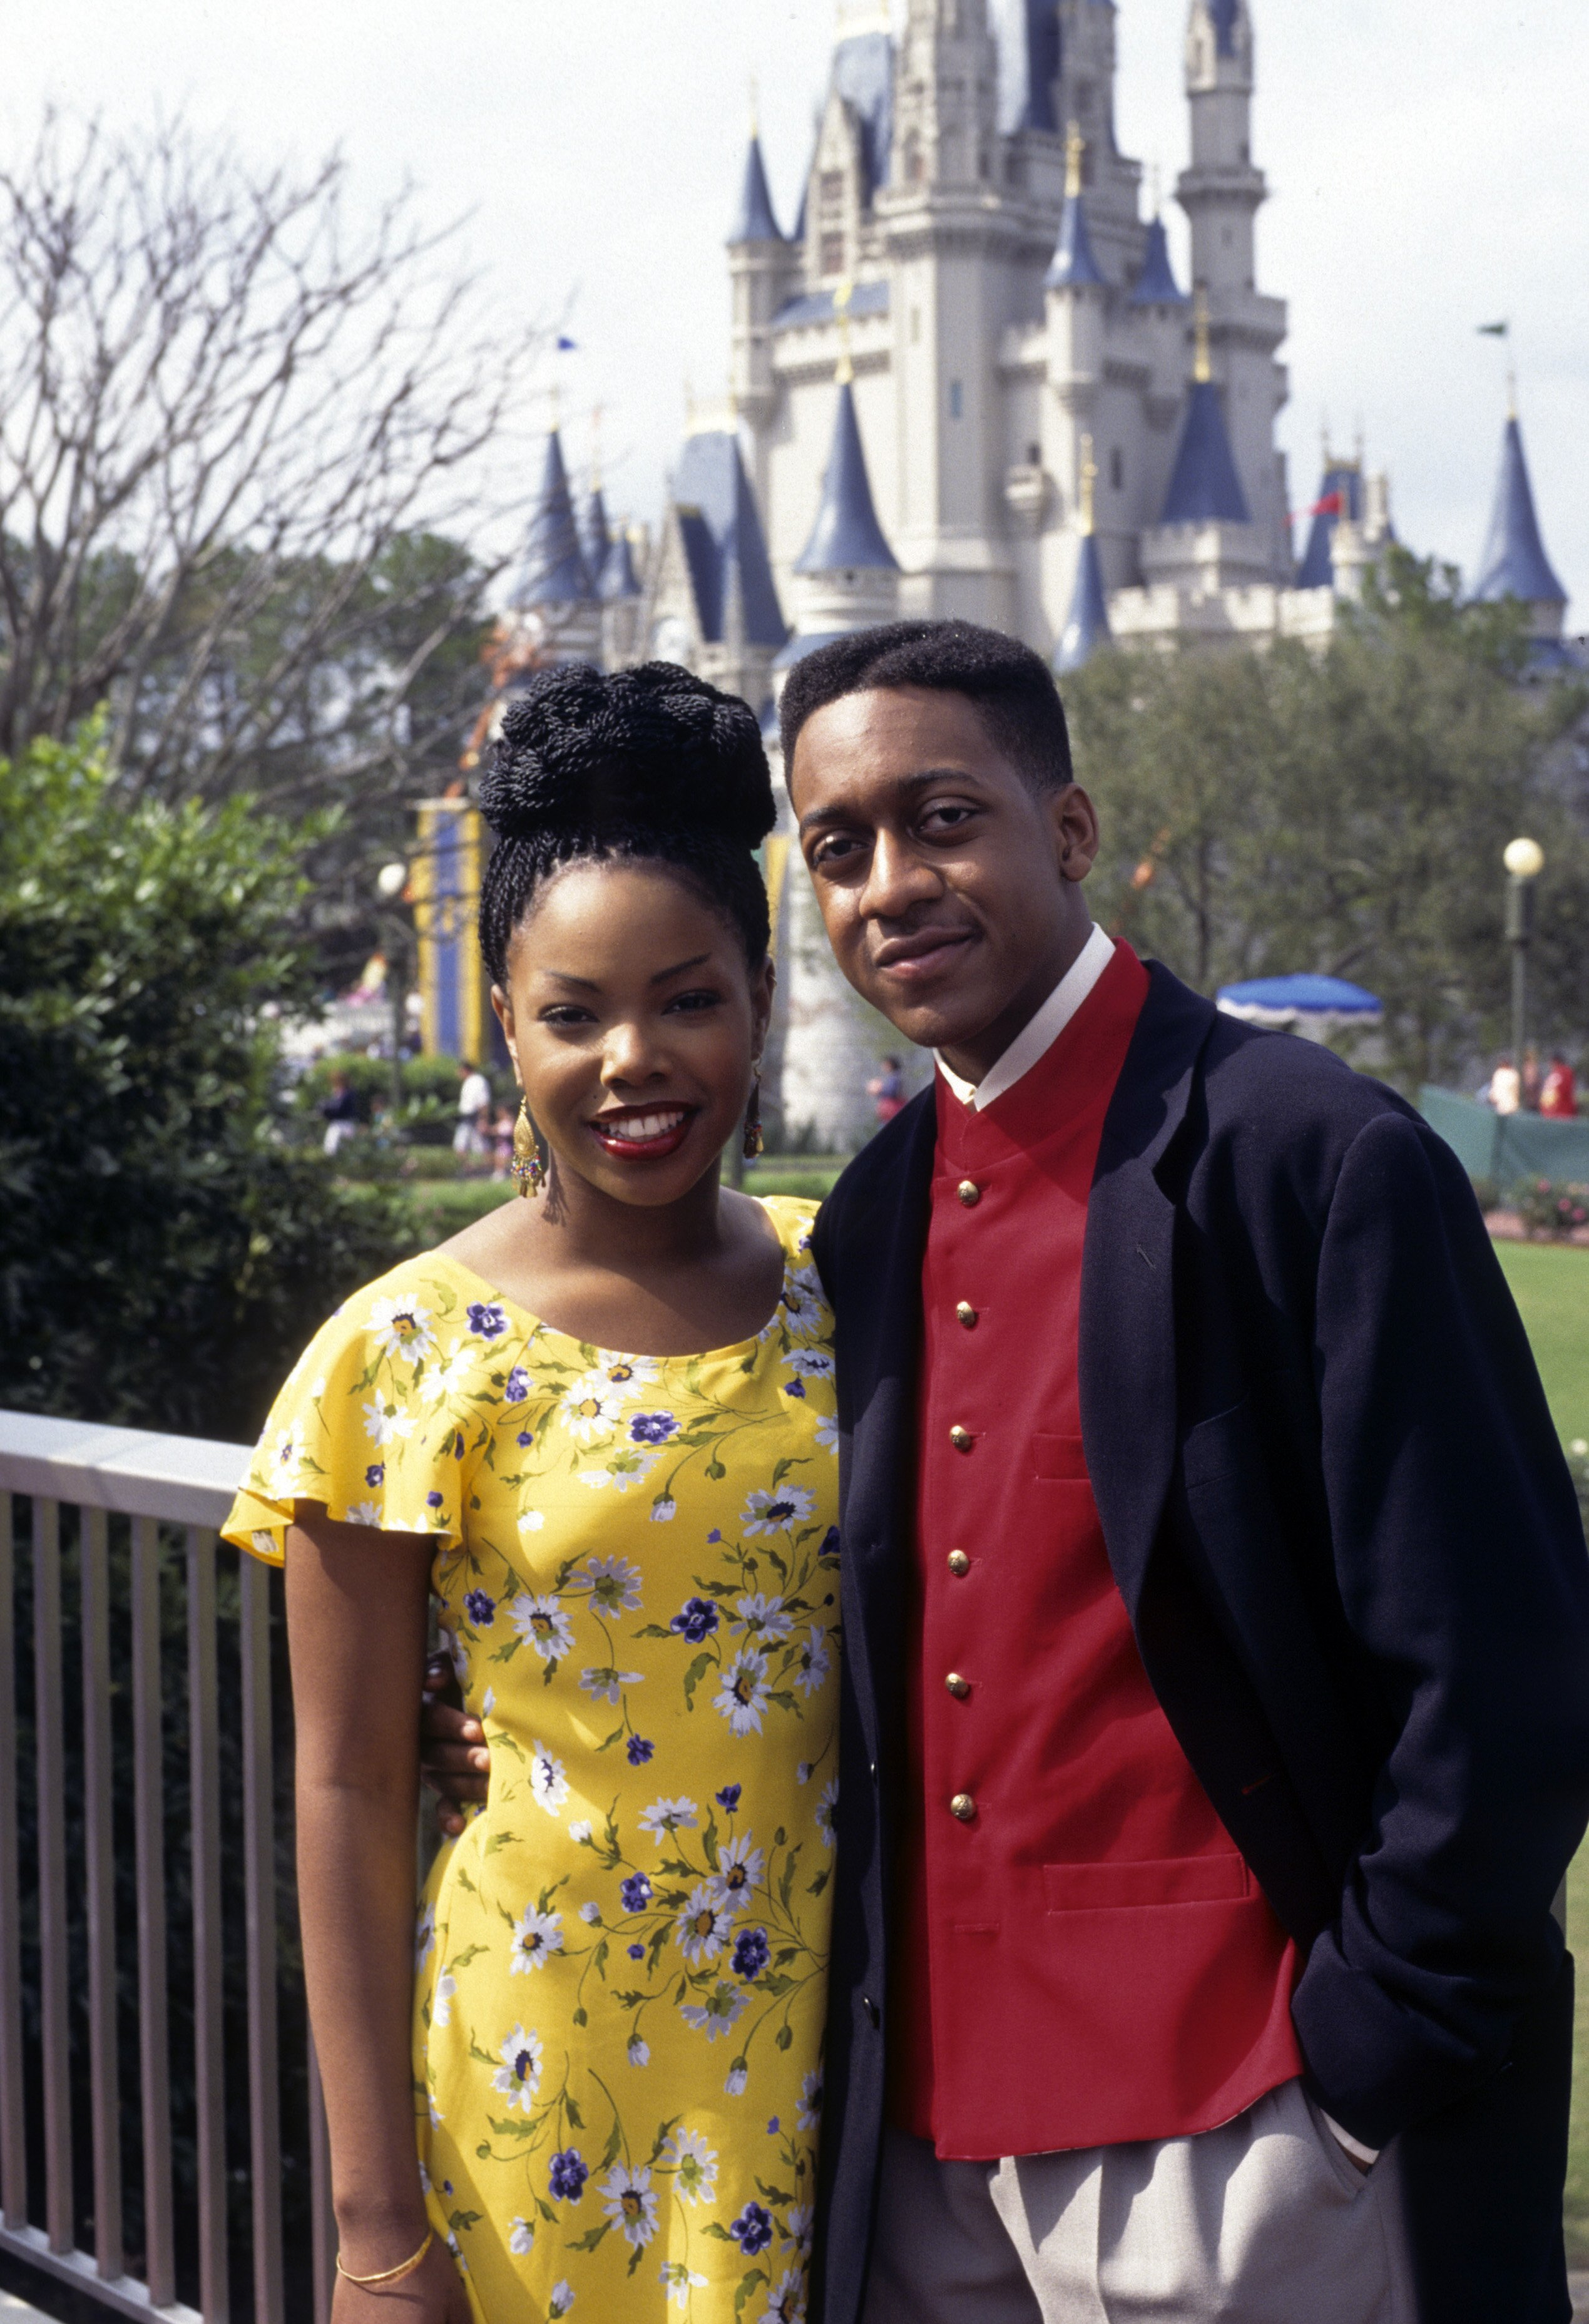 """Kellie S. Williams and Jaleel White on the set of """"We're Going to Disney World"""" that aired on April 28, 1995 